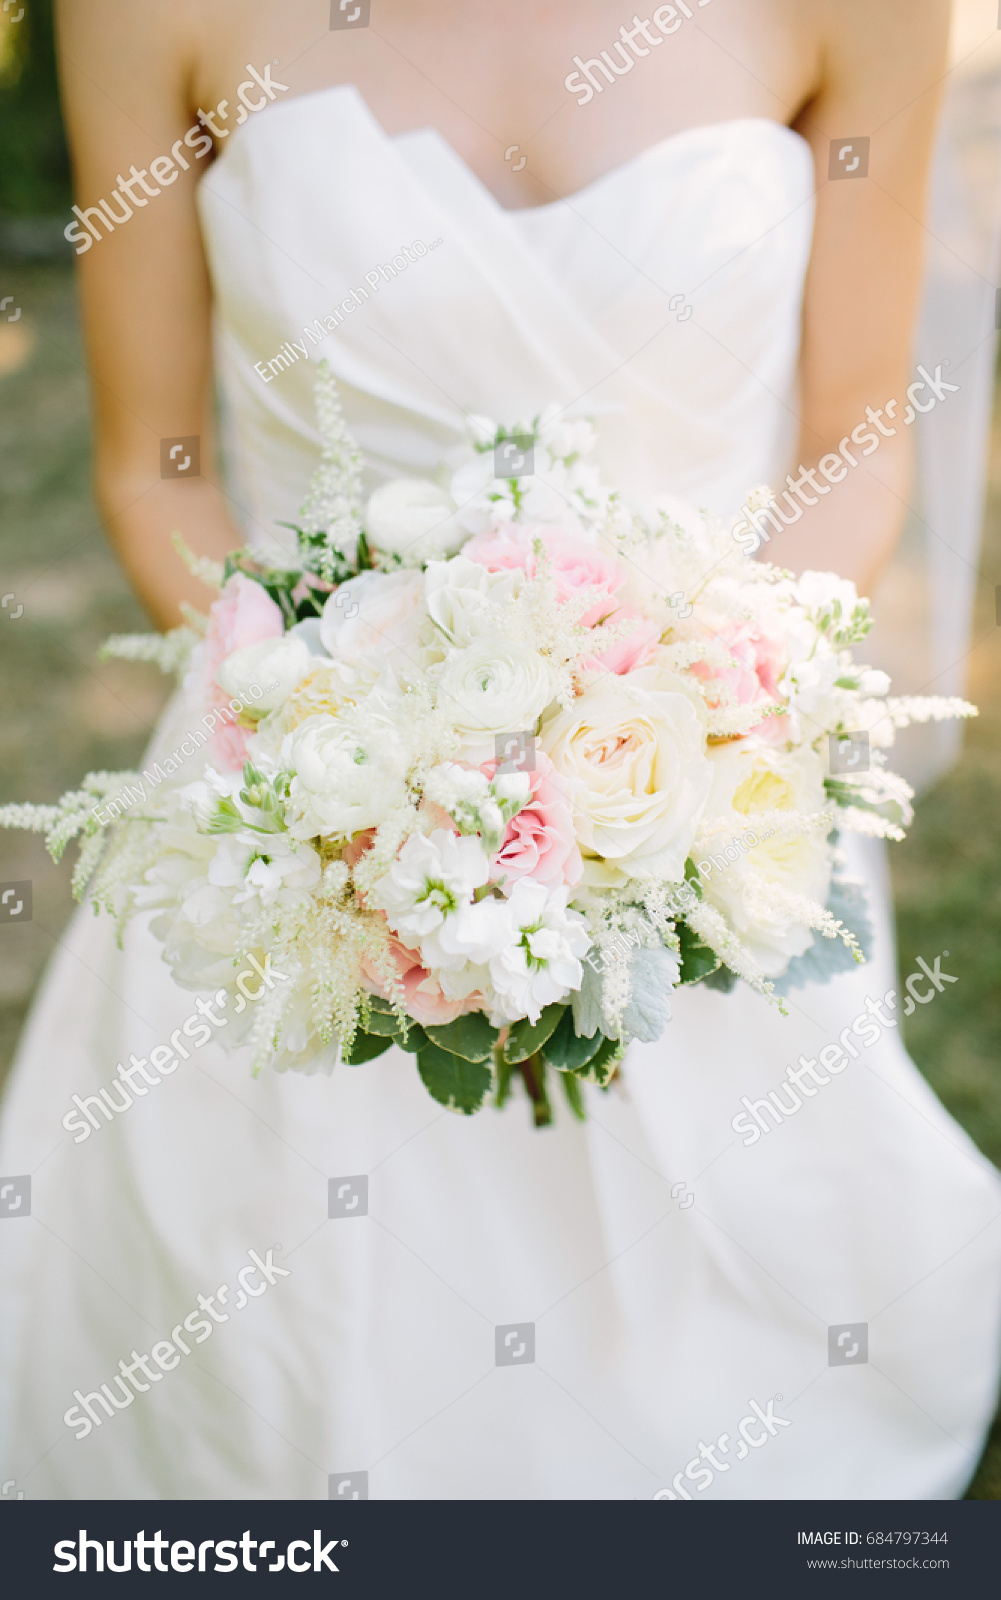 Bride Holding Pink White Wedding Bouquet Stock Photo (Safe to Use ...